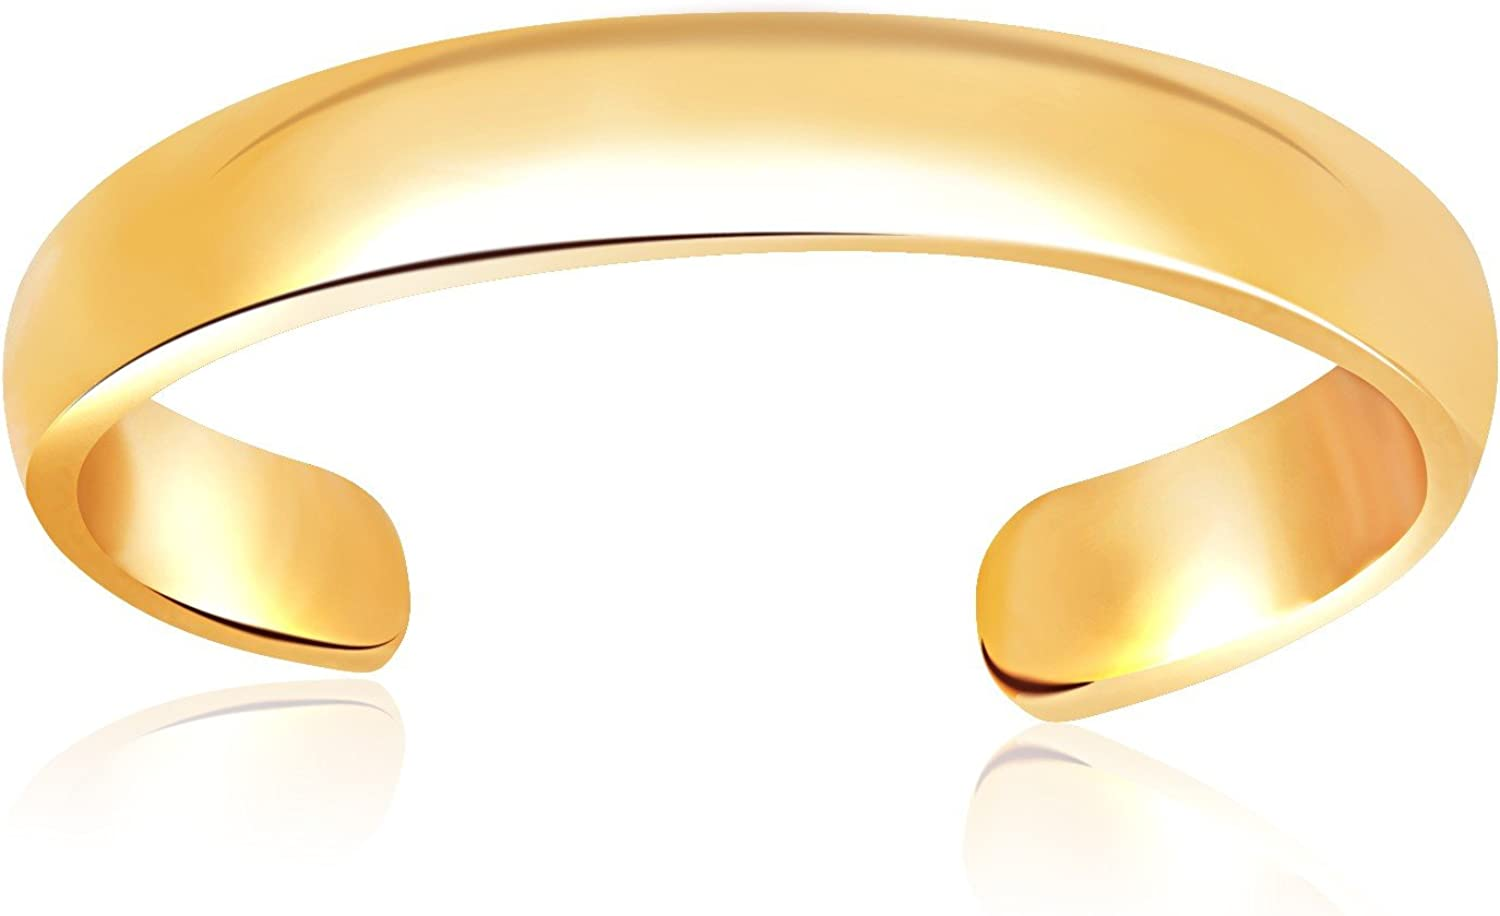 Jewels By Lux 14K Yellow Gold Toe Ring in a Polished and Simple Style